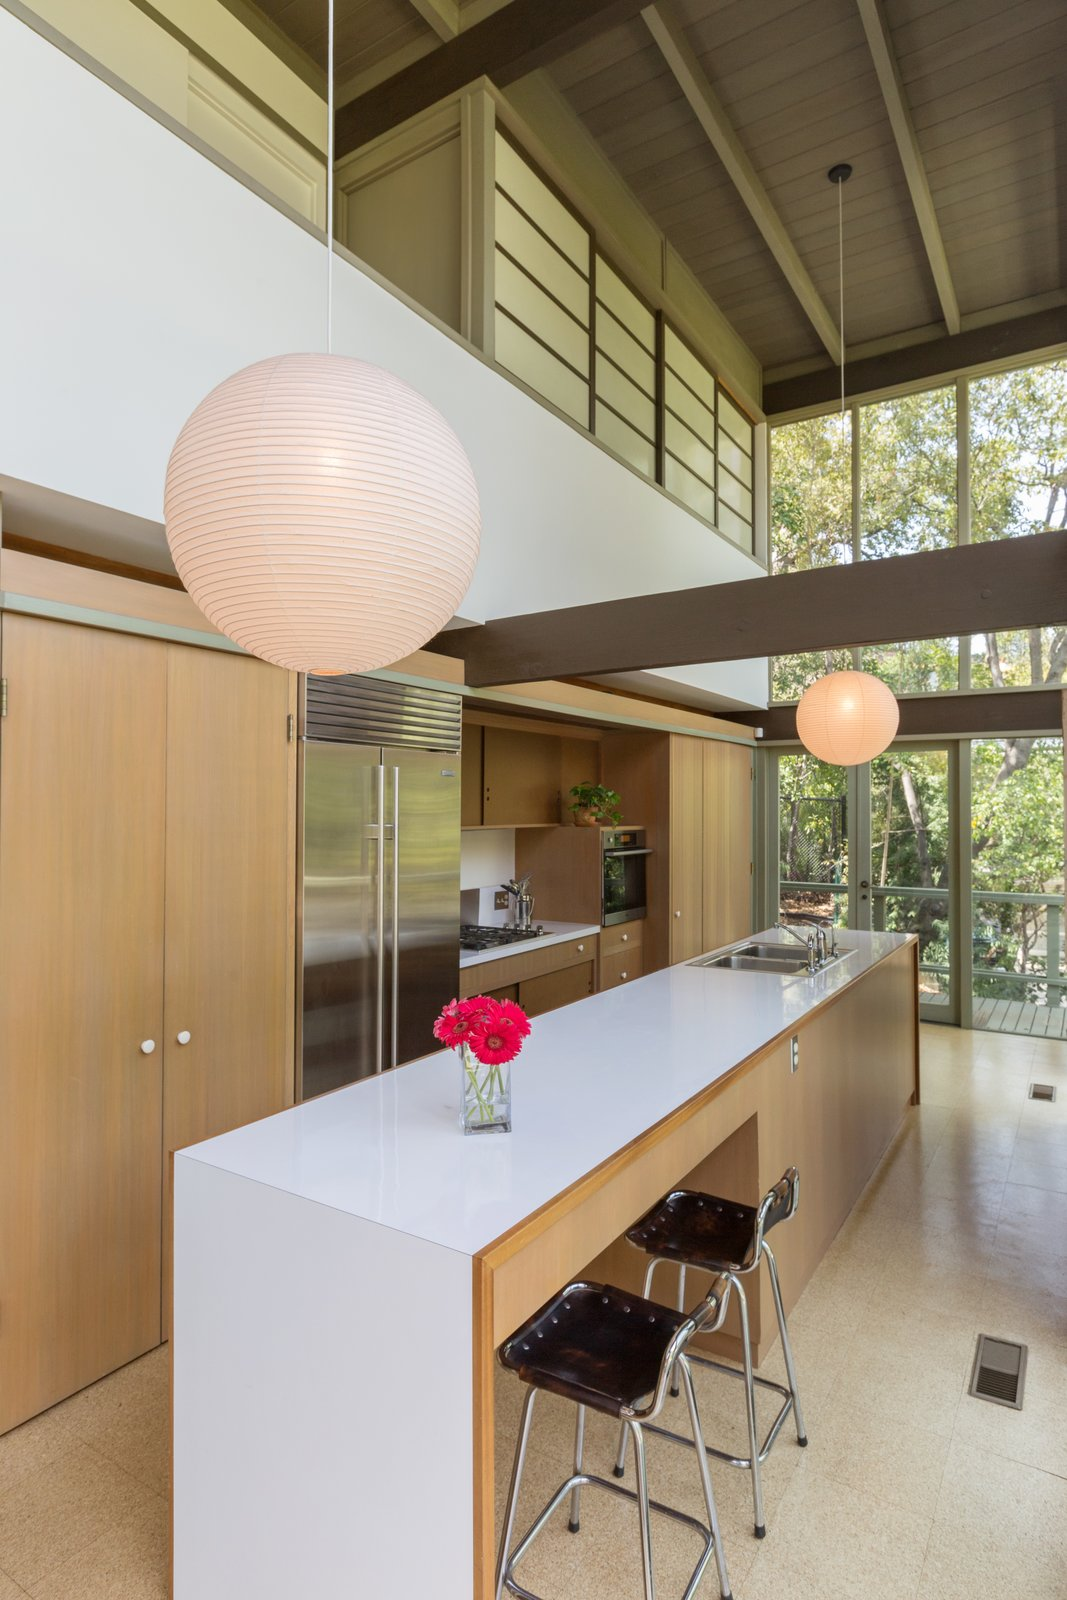 Kitchen, Pendant Lighting, Drop In Sink, Laminate Counter, Refrigerator, Wood Cabinet, Microwave, Cooktops, and Wall Oven The updated kitchen features a Sub-Zero refrigerator and Miele appliances.  Photos from Mad Men Producer Puts His Pasadena Midcentury Up For Auction Starting at $1.7M